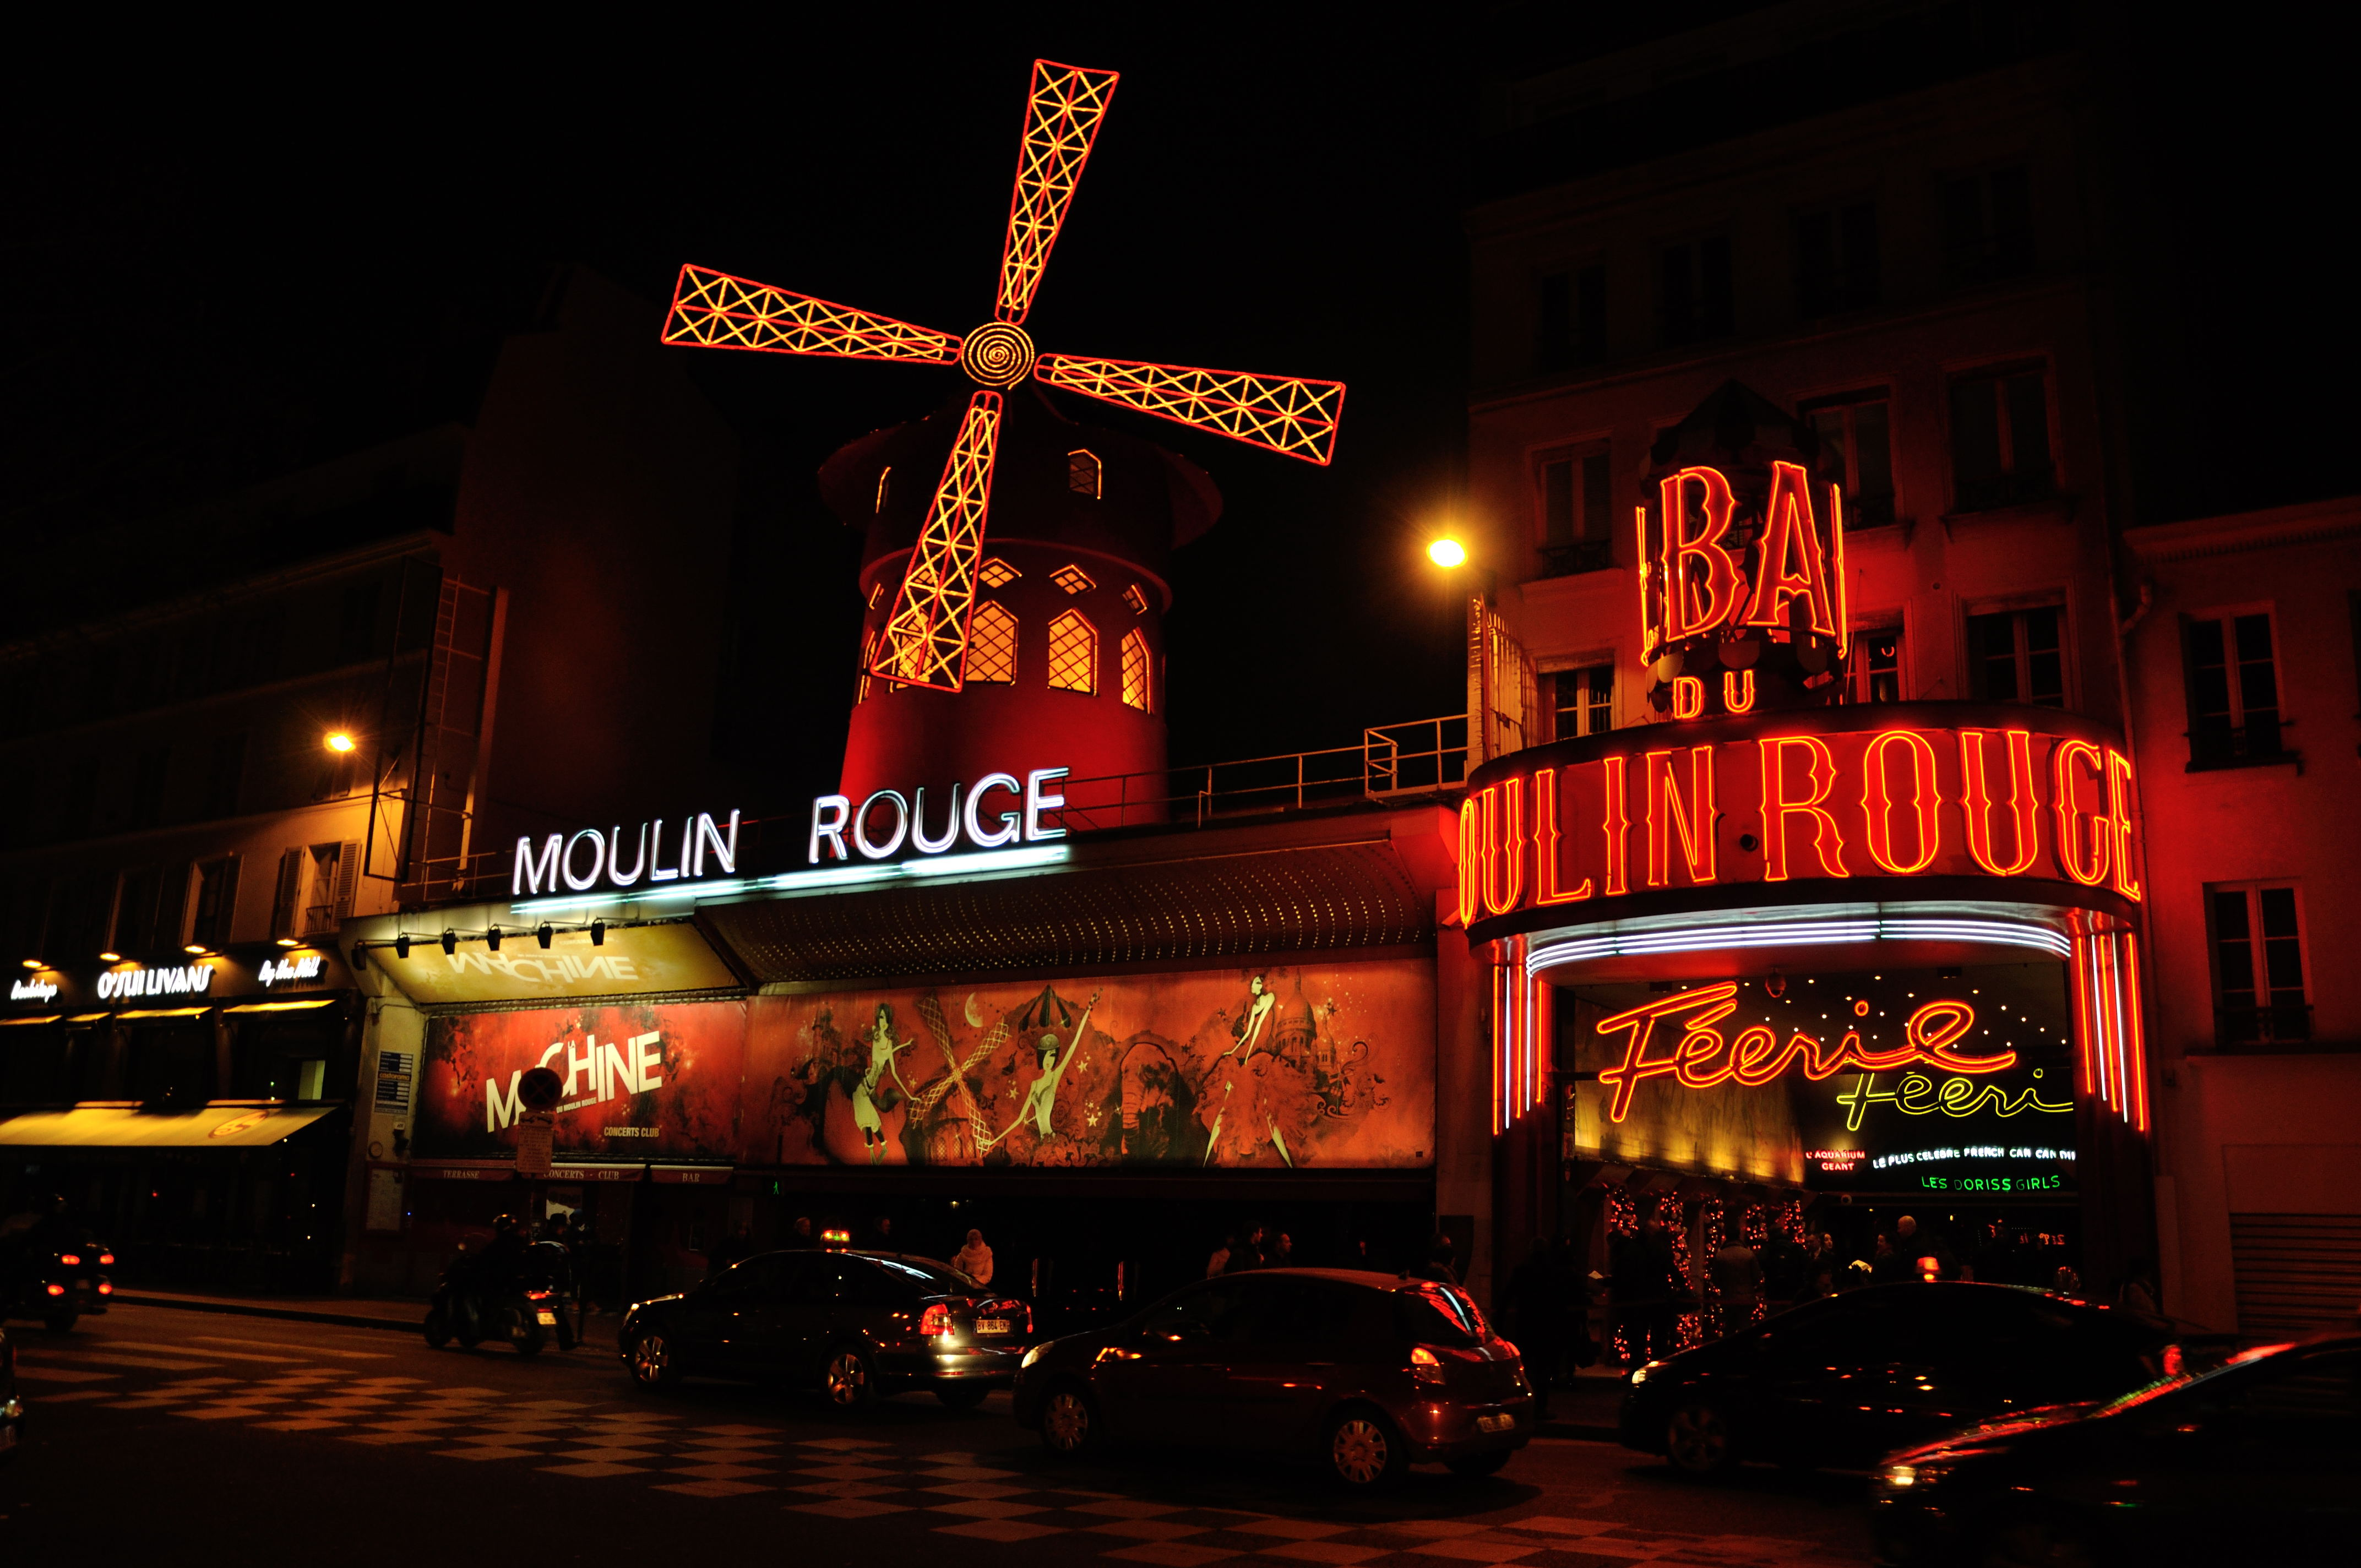 Moulin Rouge facts